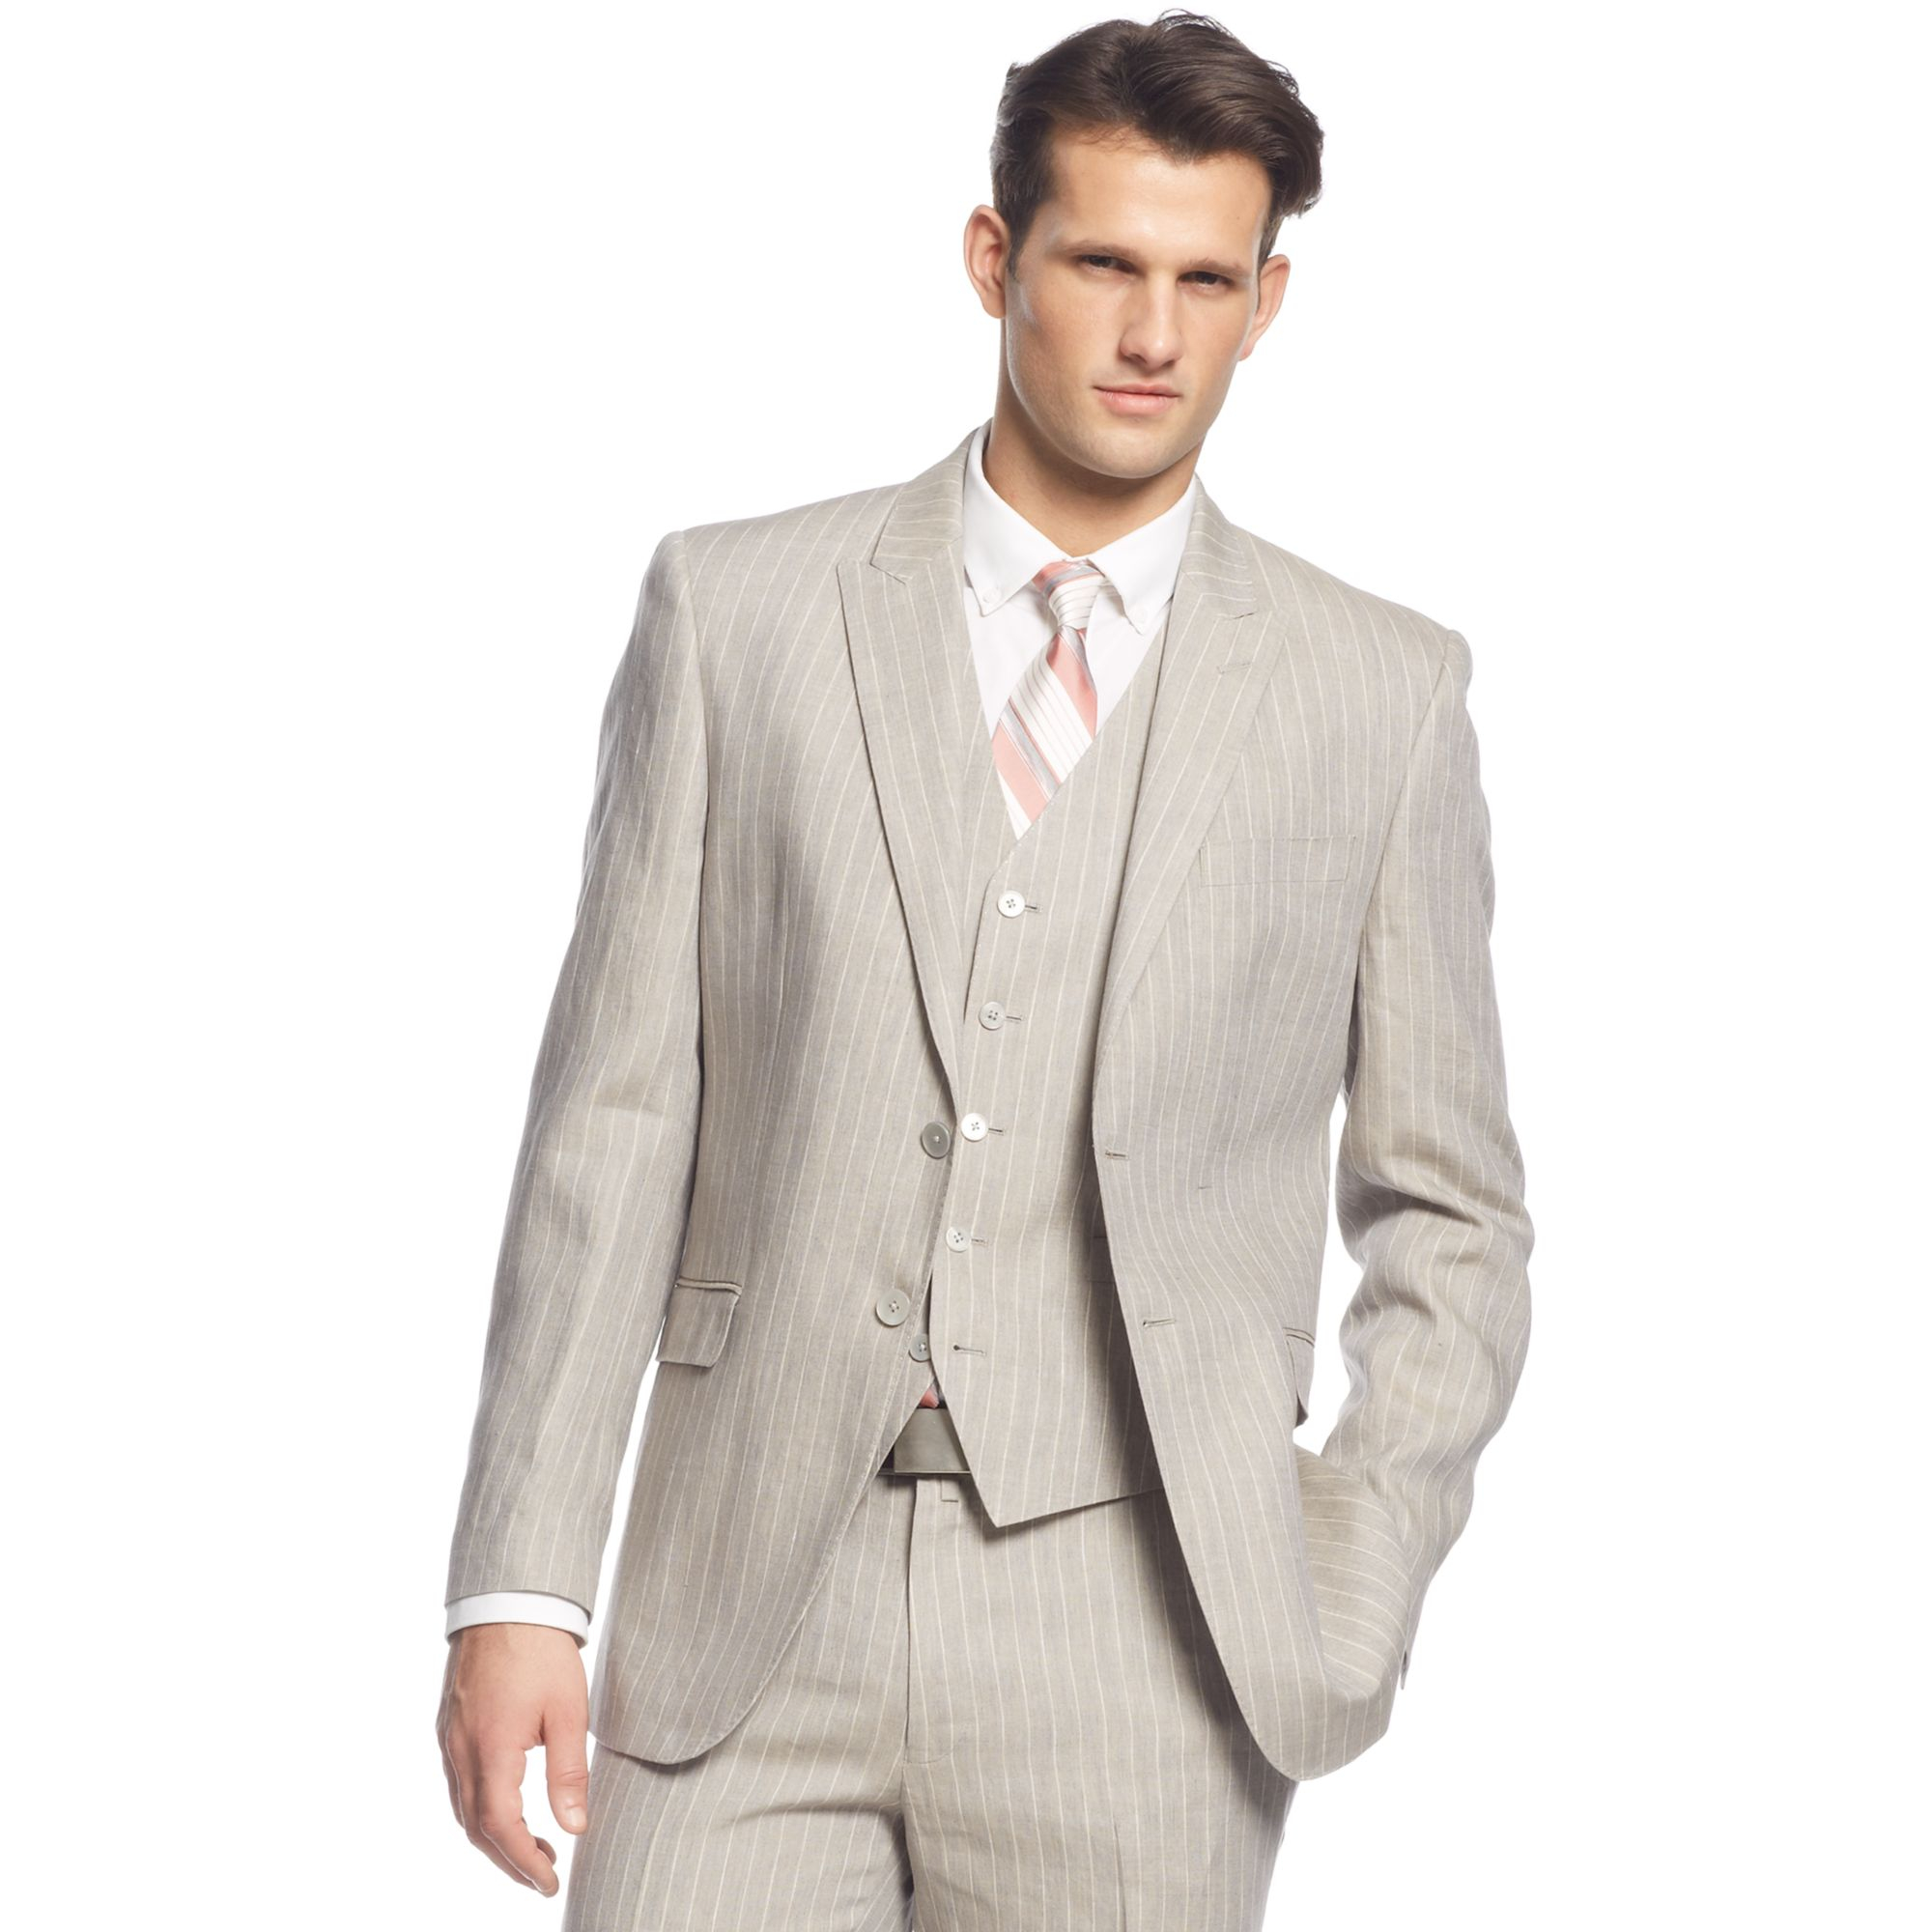 Buy low price, high quality linen suits with worldwide shipping on evildownloadersuper74k.ga TPSAADE Light Gray Linen Suit For Beach Wedding 2 Piece Groom Tuxedos Mens Prom US $ / piece. linen suits reviews: linen pants pants linen beach trouser trouser beach pant beach.